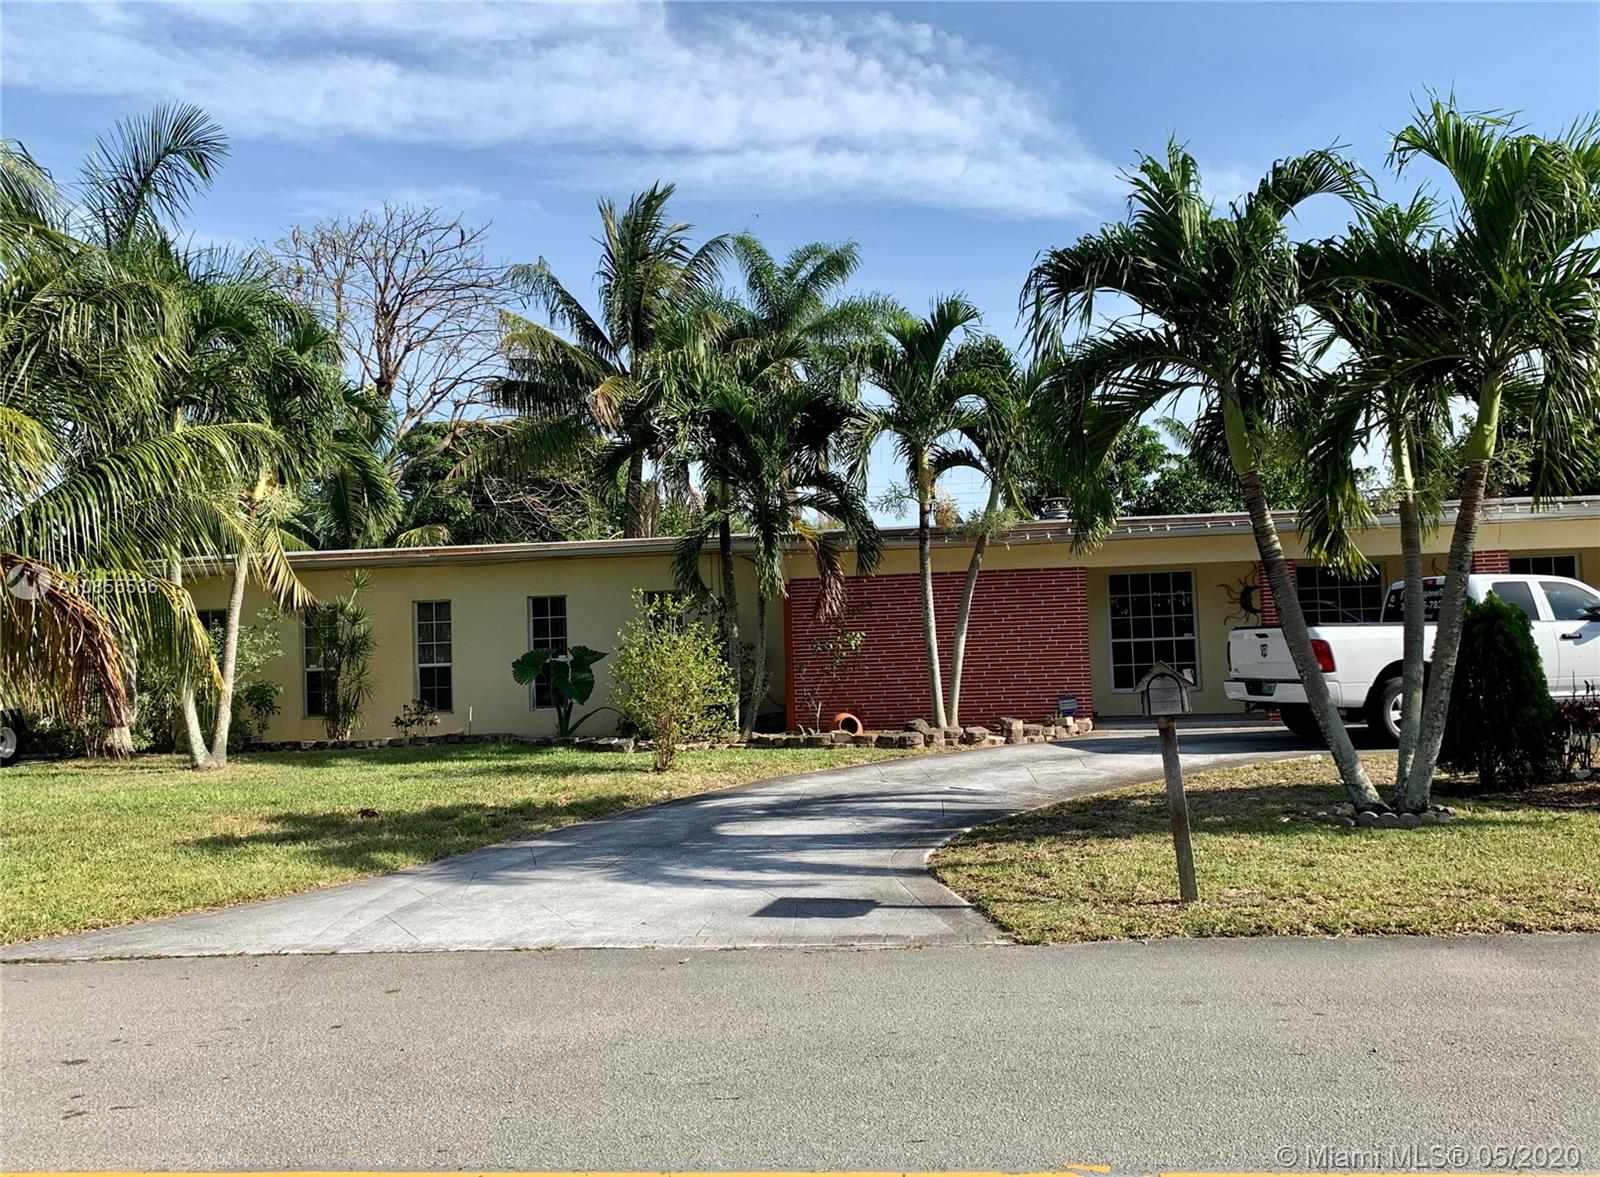 6900 SW 16th St, Pembroke Pines, Florida 33023, 5 Bedrooms Bedrooms, ,3 BathroomsBathrooms,Residential,For Sale,6900 SW 16th St,A10855536